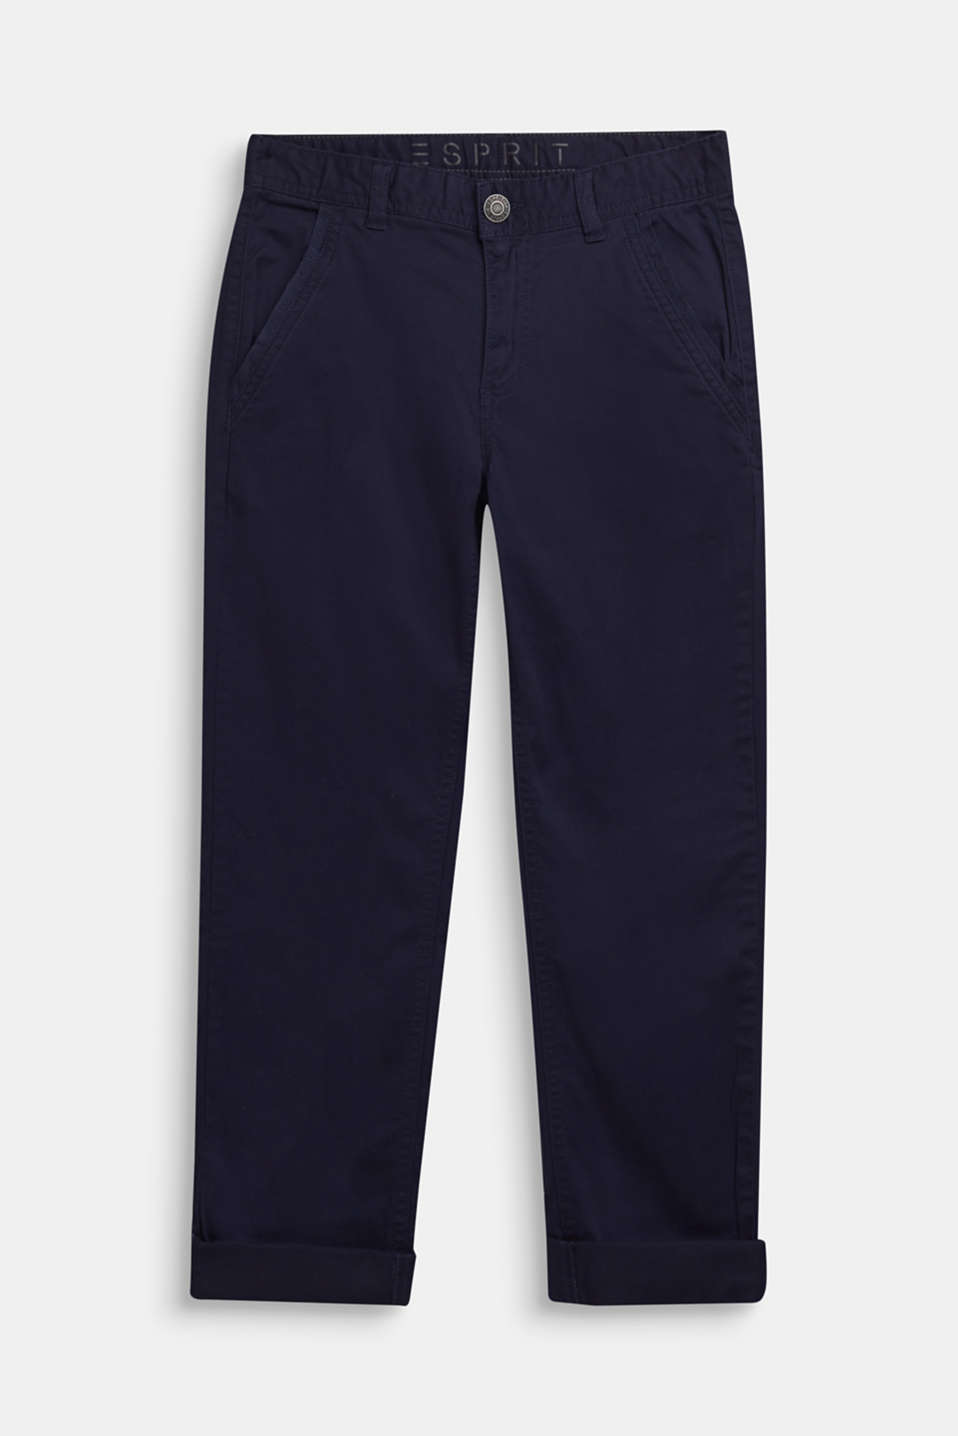 Esprit - Pantalon en coton stretch à empiècement en ruban tissé